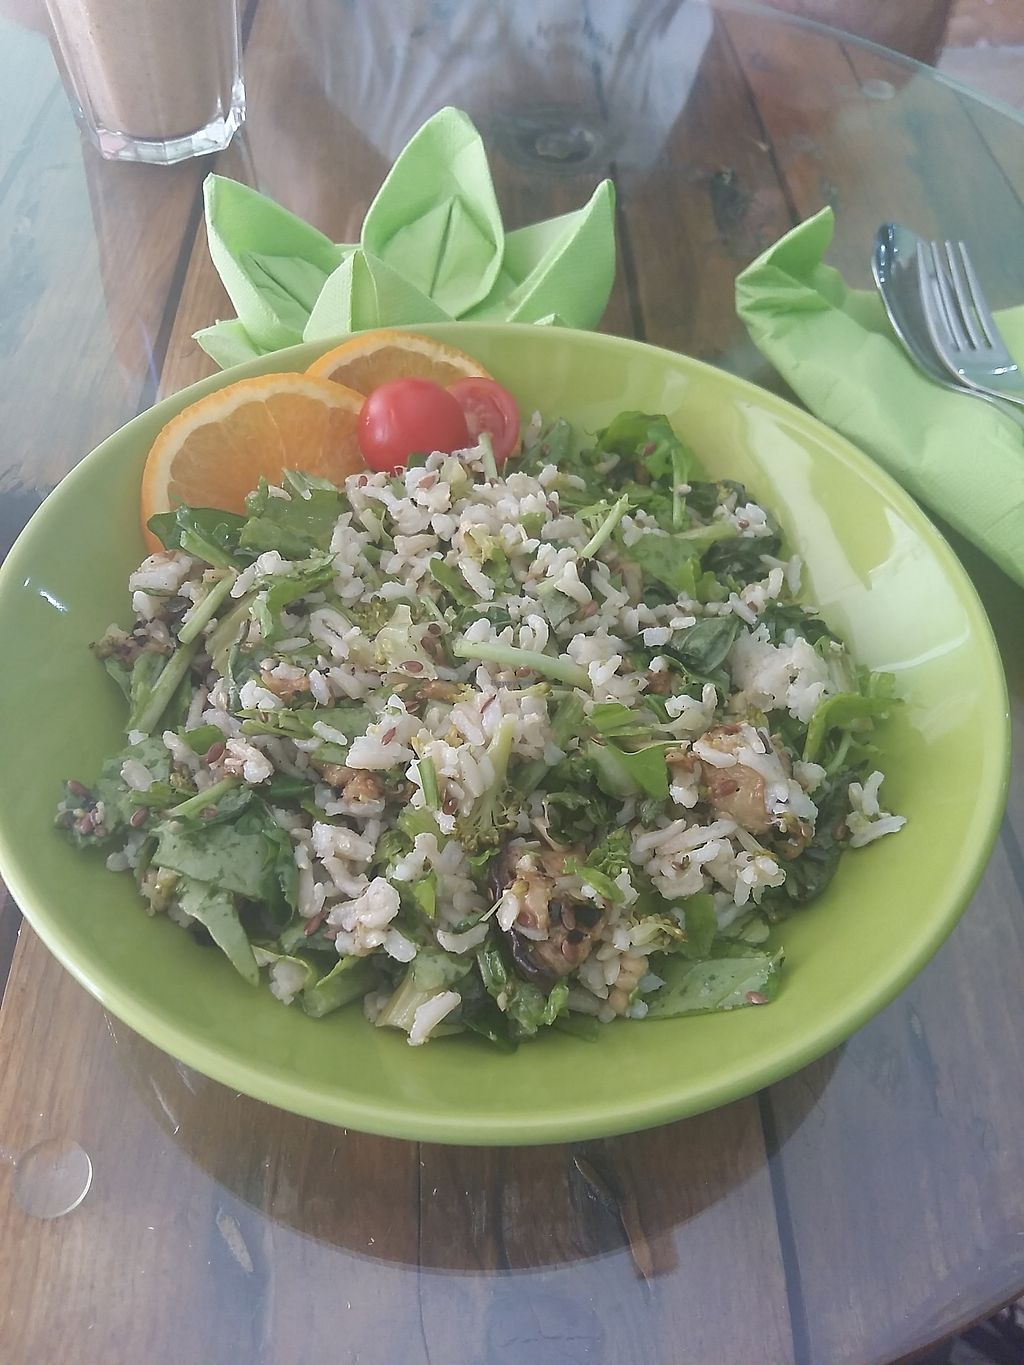 "Photo of GreenMood  by <a href=""/members/profile/ninaframbuesa"">ninaframbuesa</a> <br/>Bowl with brown rice <br/> August 5, 2017  - <a href='/contact/abuse/image/84080/289258'>Report</a>"